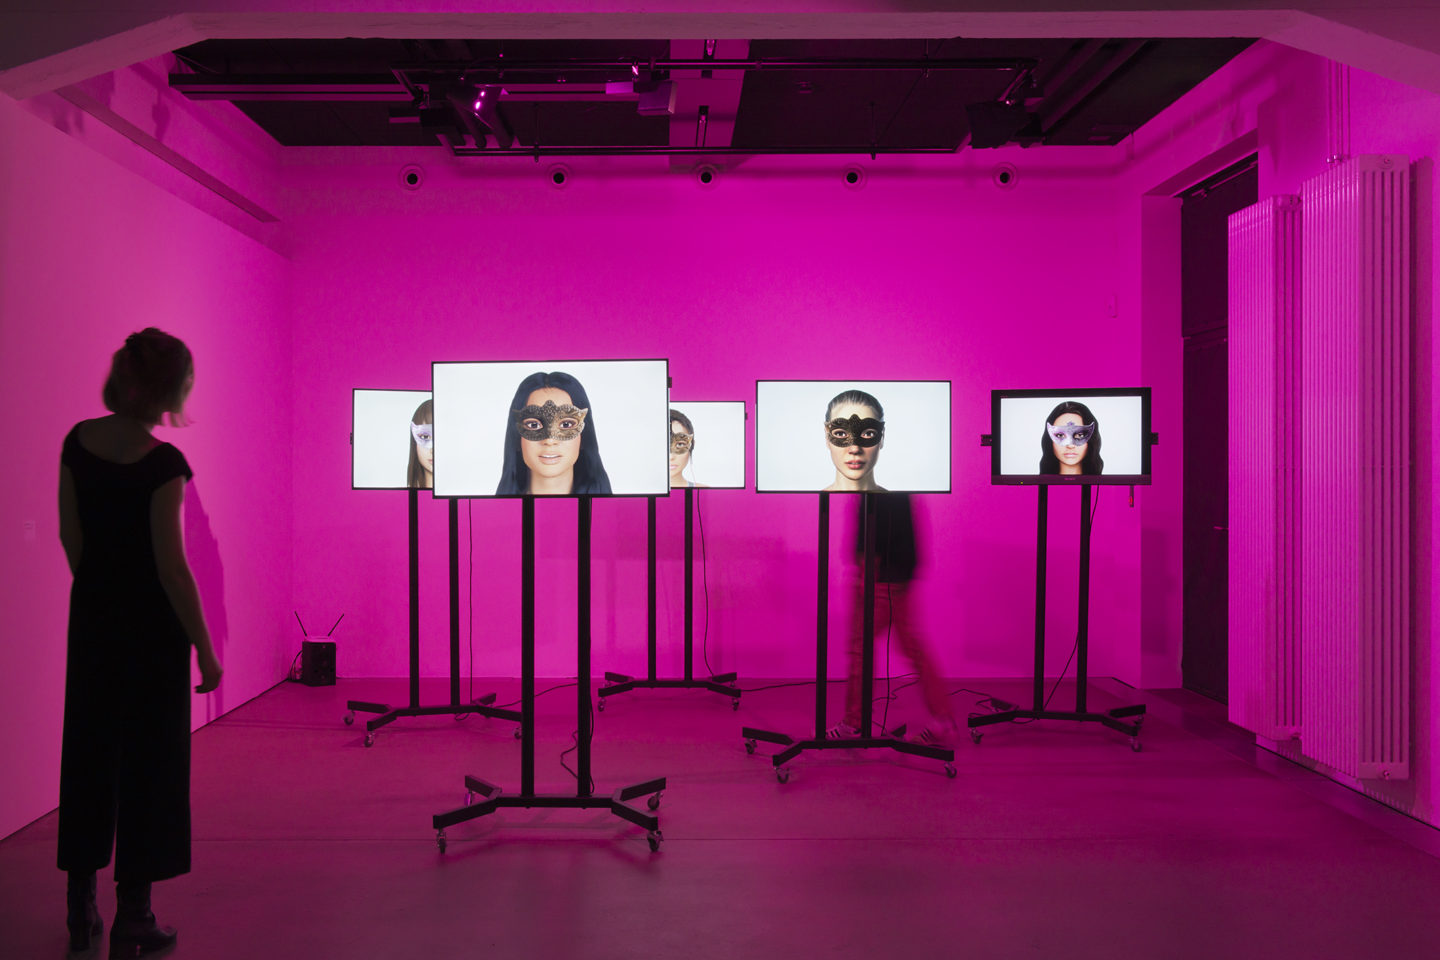 """Installation View !Mediengruppe Bitnik """"Ashley Madison Angels At Work in Basel, 2018"""" at HEK, Basel / Photo: Franz Wamhof / Courtesy: the artists"""